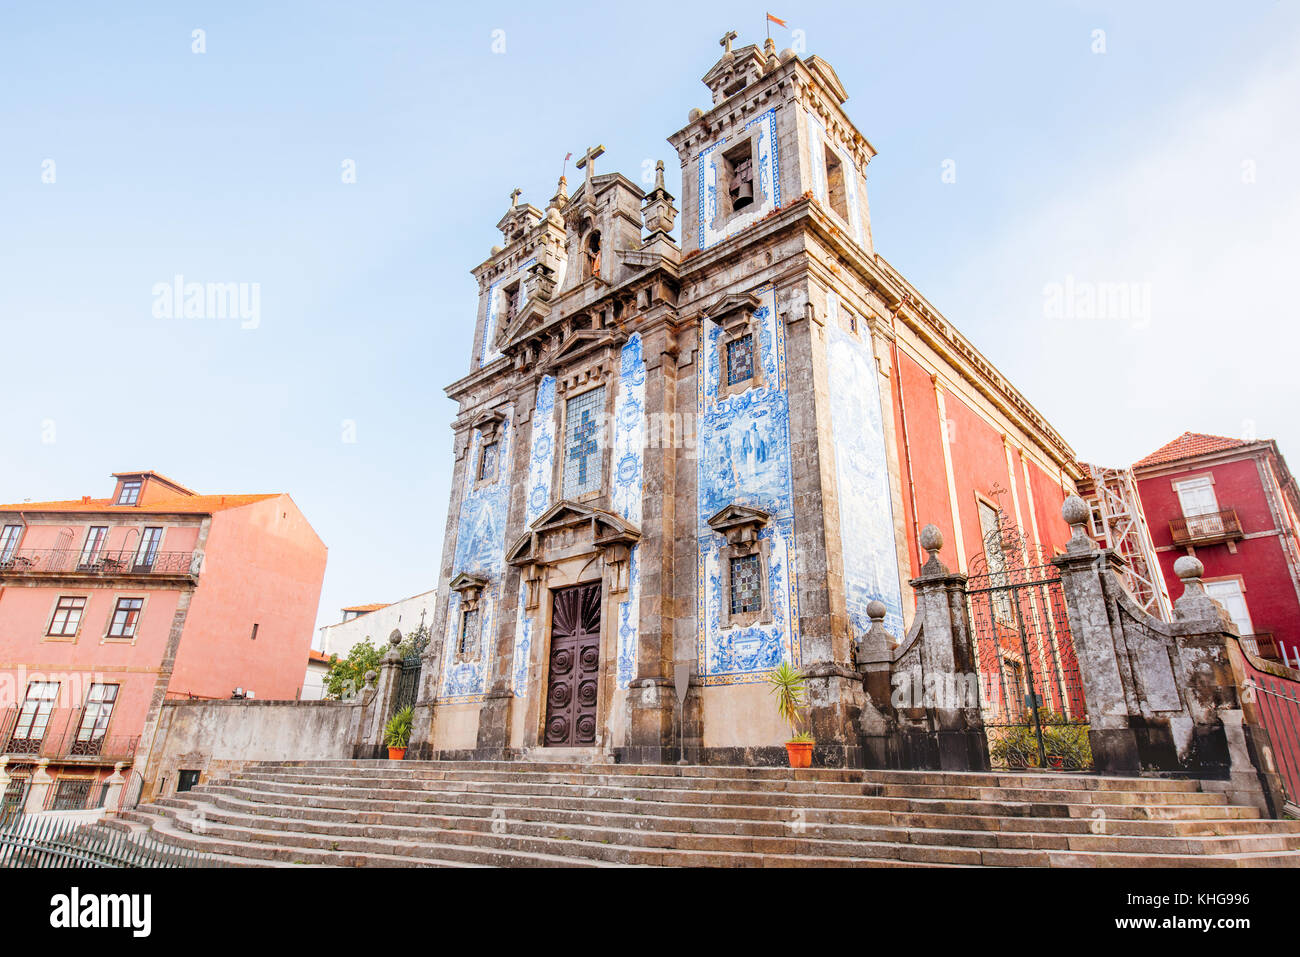 Porto city in Portugal - Stock Image